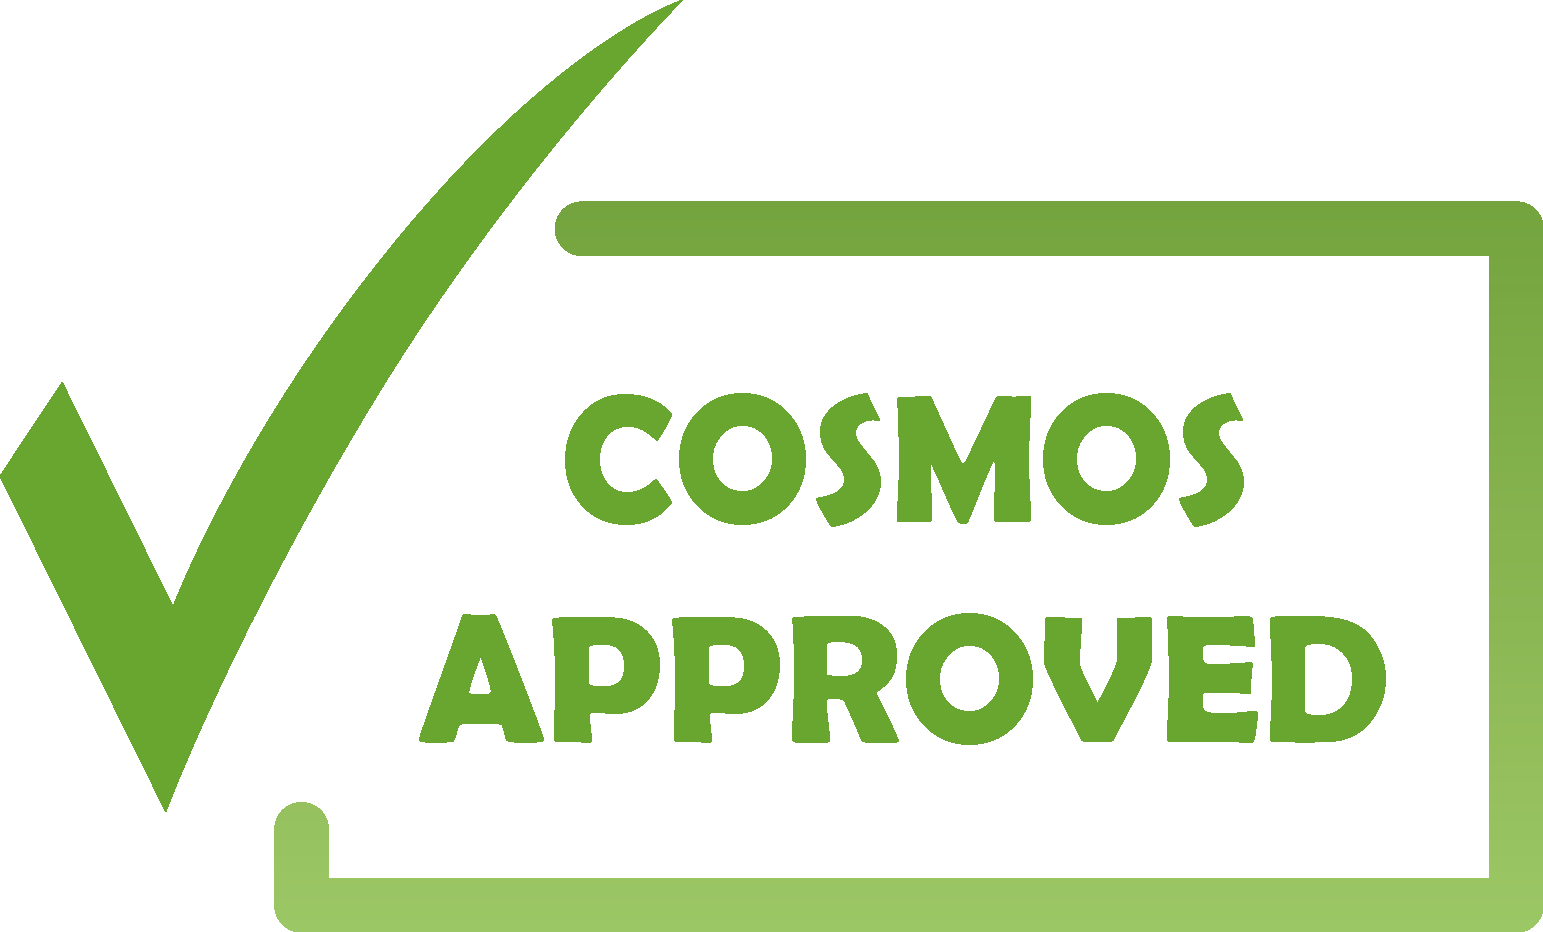 Cosmos Approved